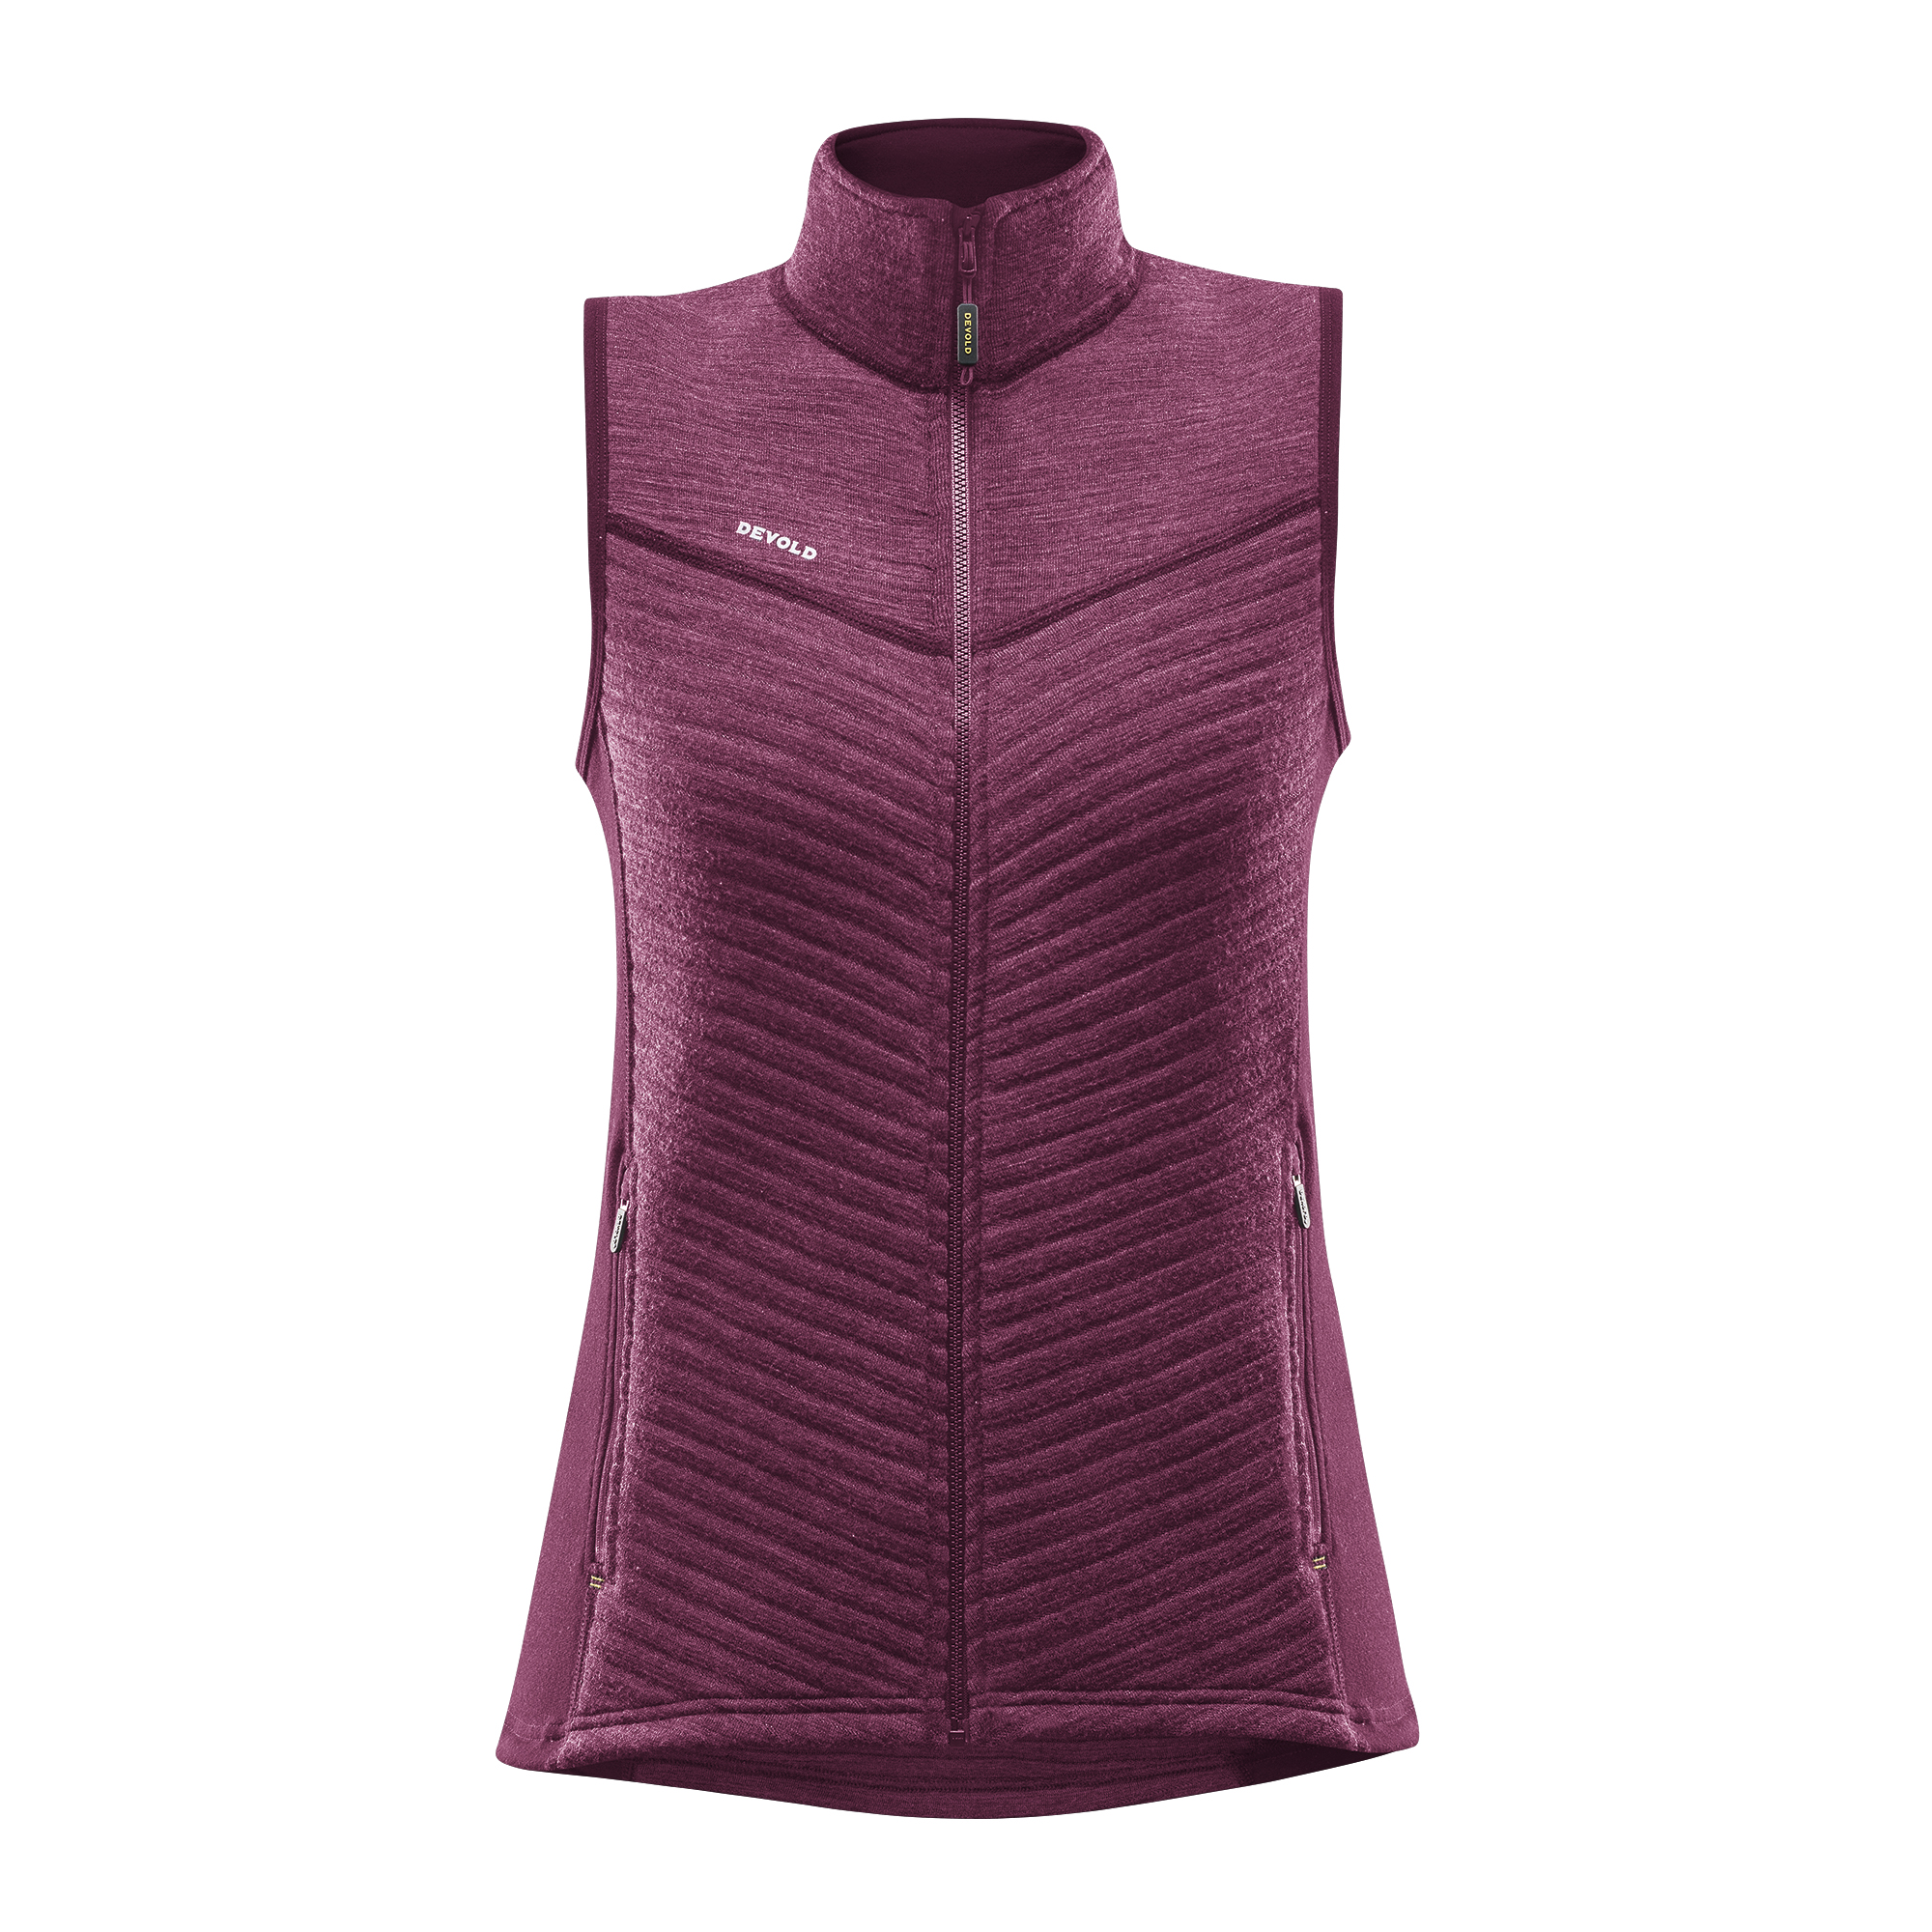 "Devold ""Tinden Spacer wm Vest"" - plum"